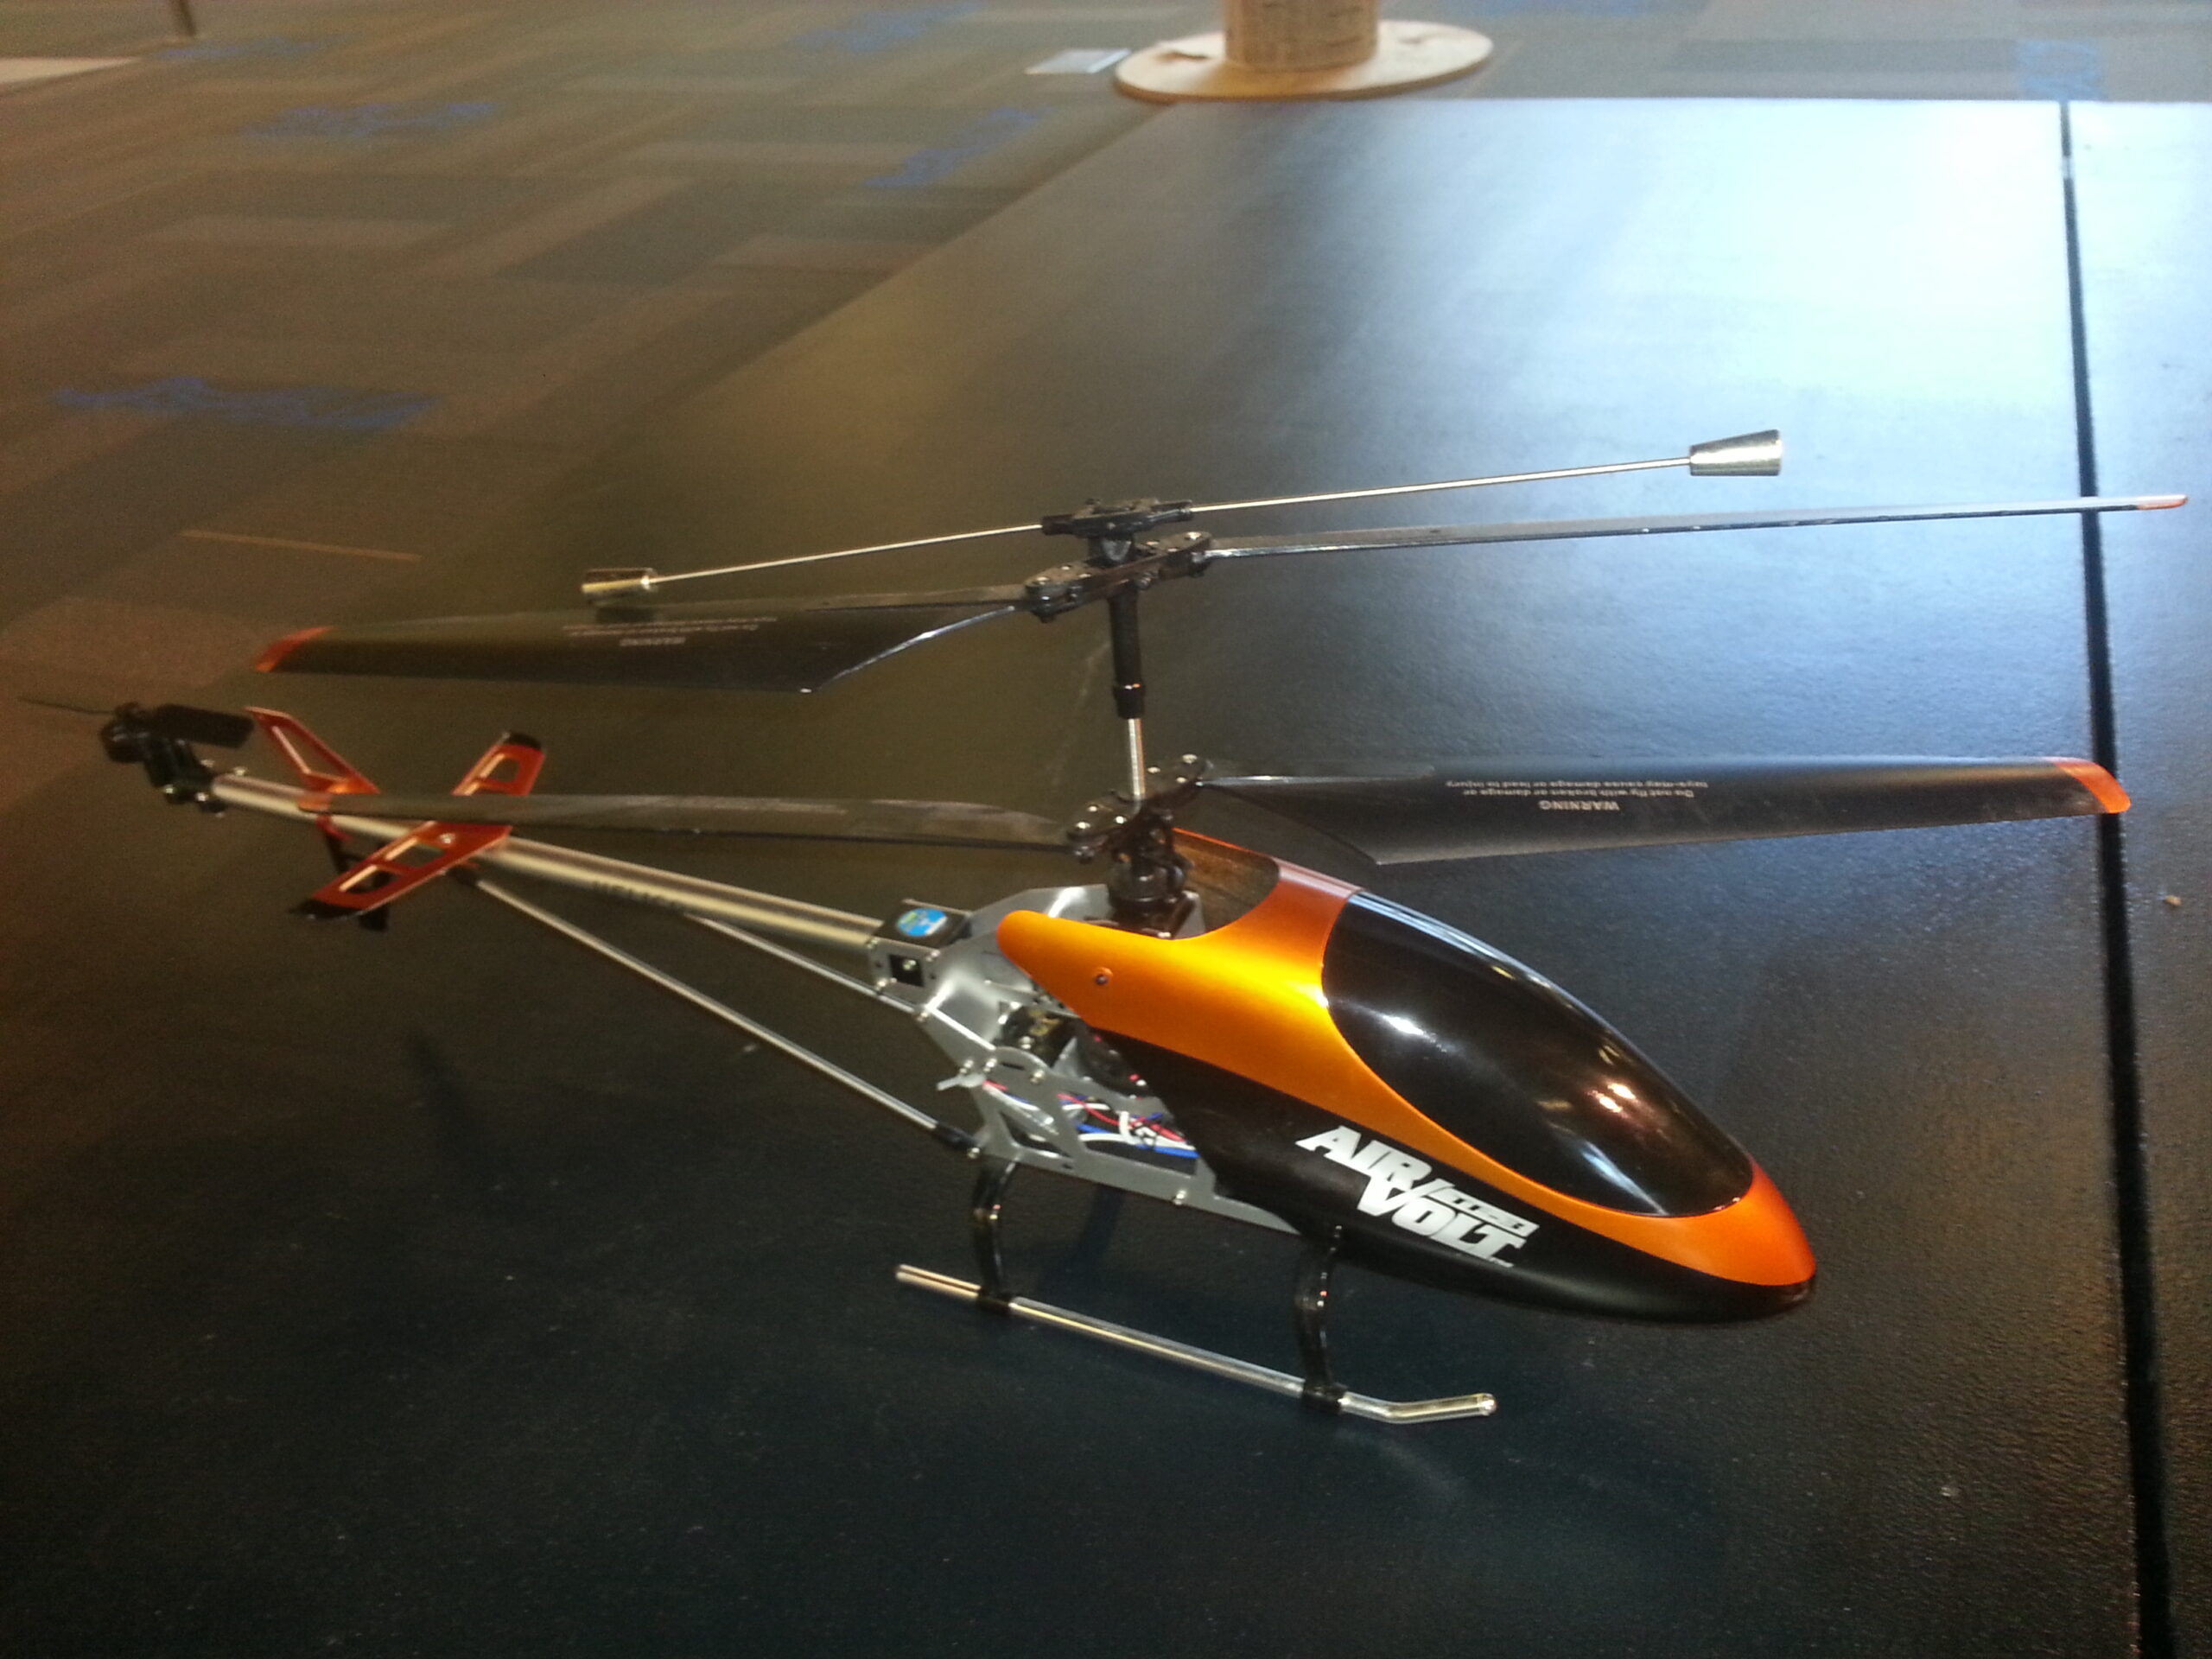 The original RC helicopter.